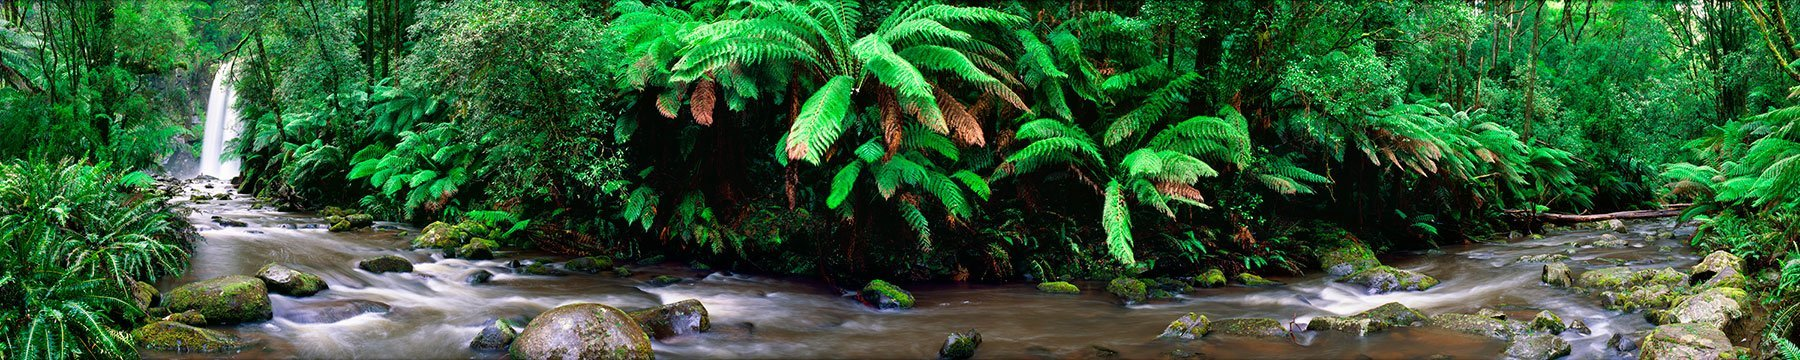 Hopetoun Falls flowing gracefully through the lush vegetation of the Otway Ranges, Victoria, Australia.